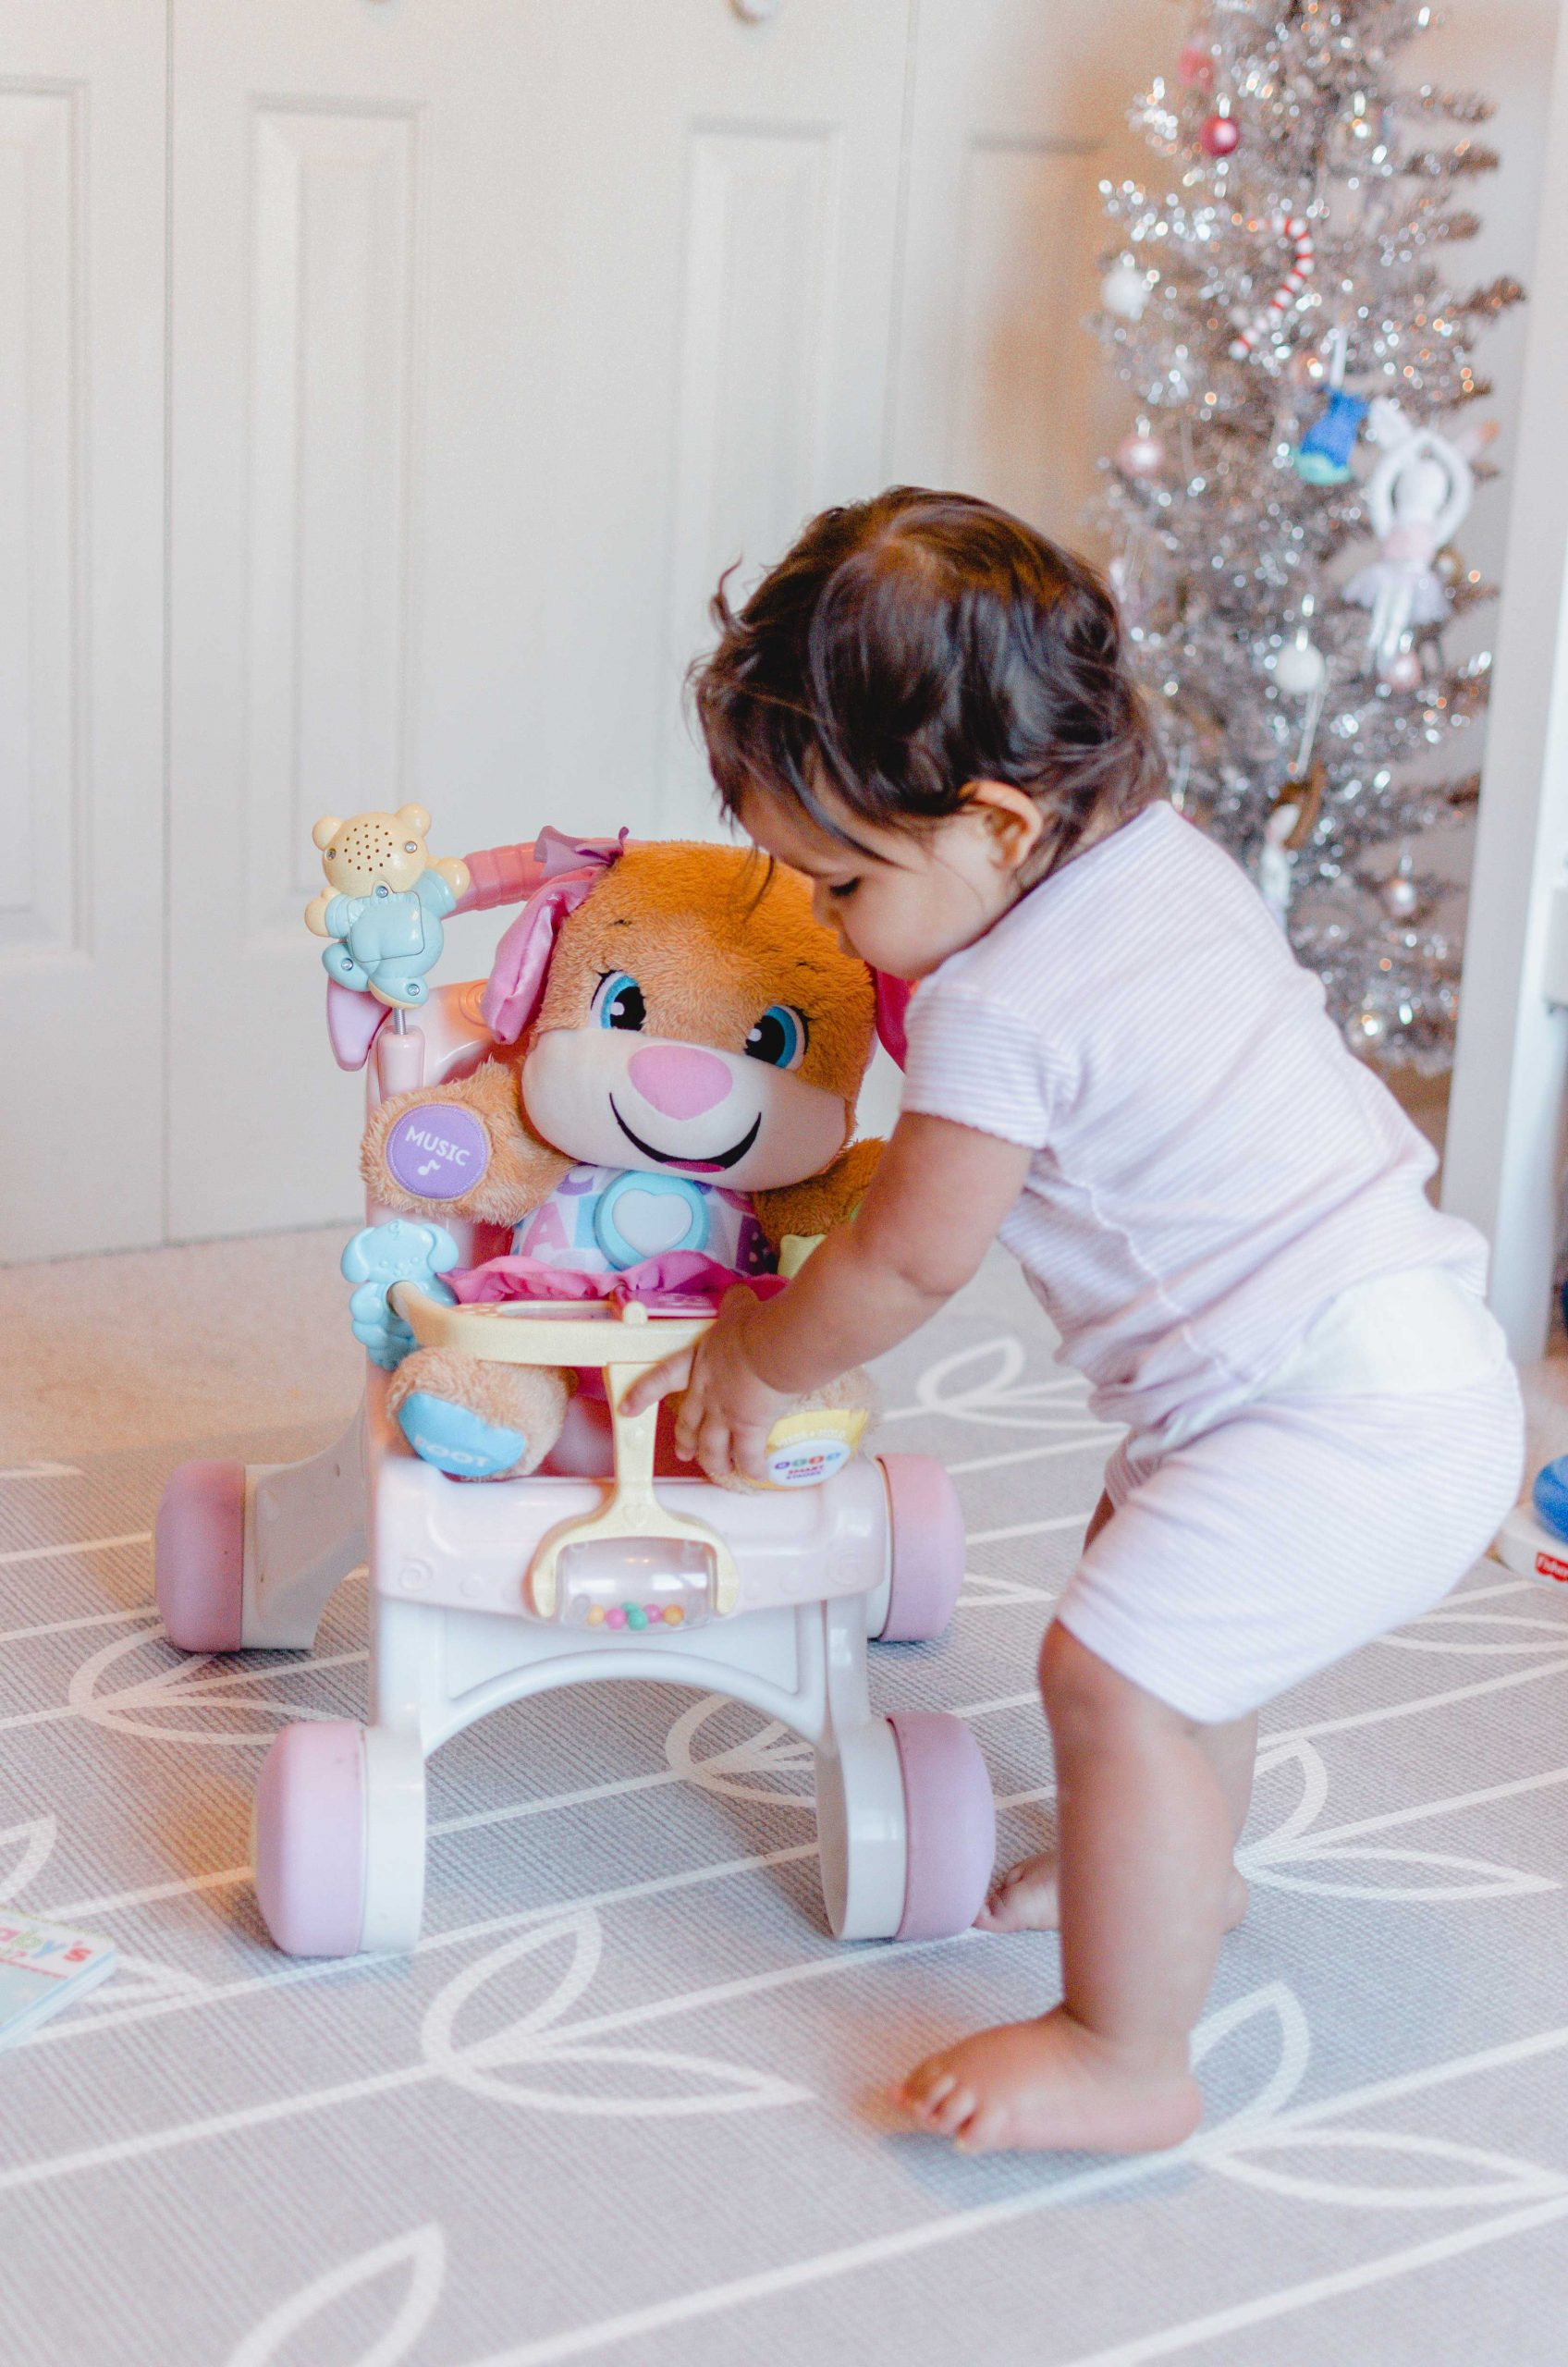 The ultimate gift guide for baby, including our family's favorite baby gift ideas from newborn to 12 months old!